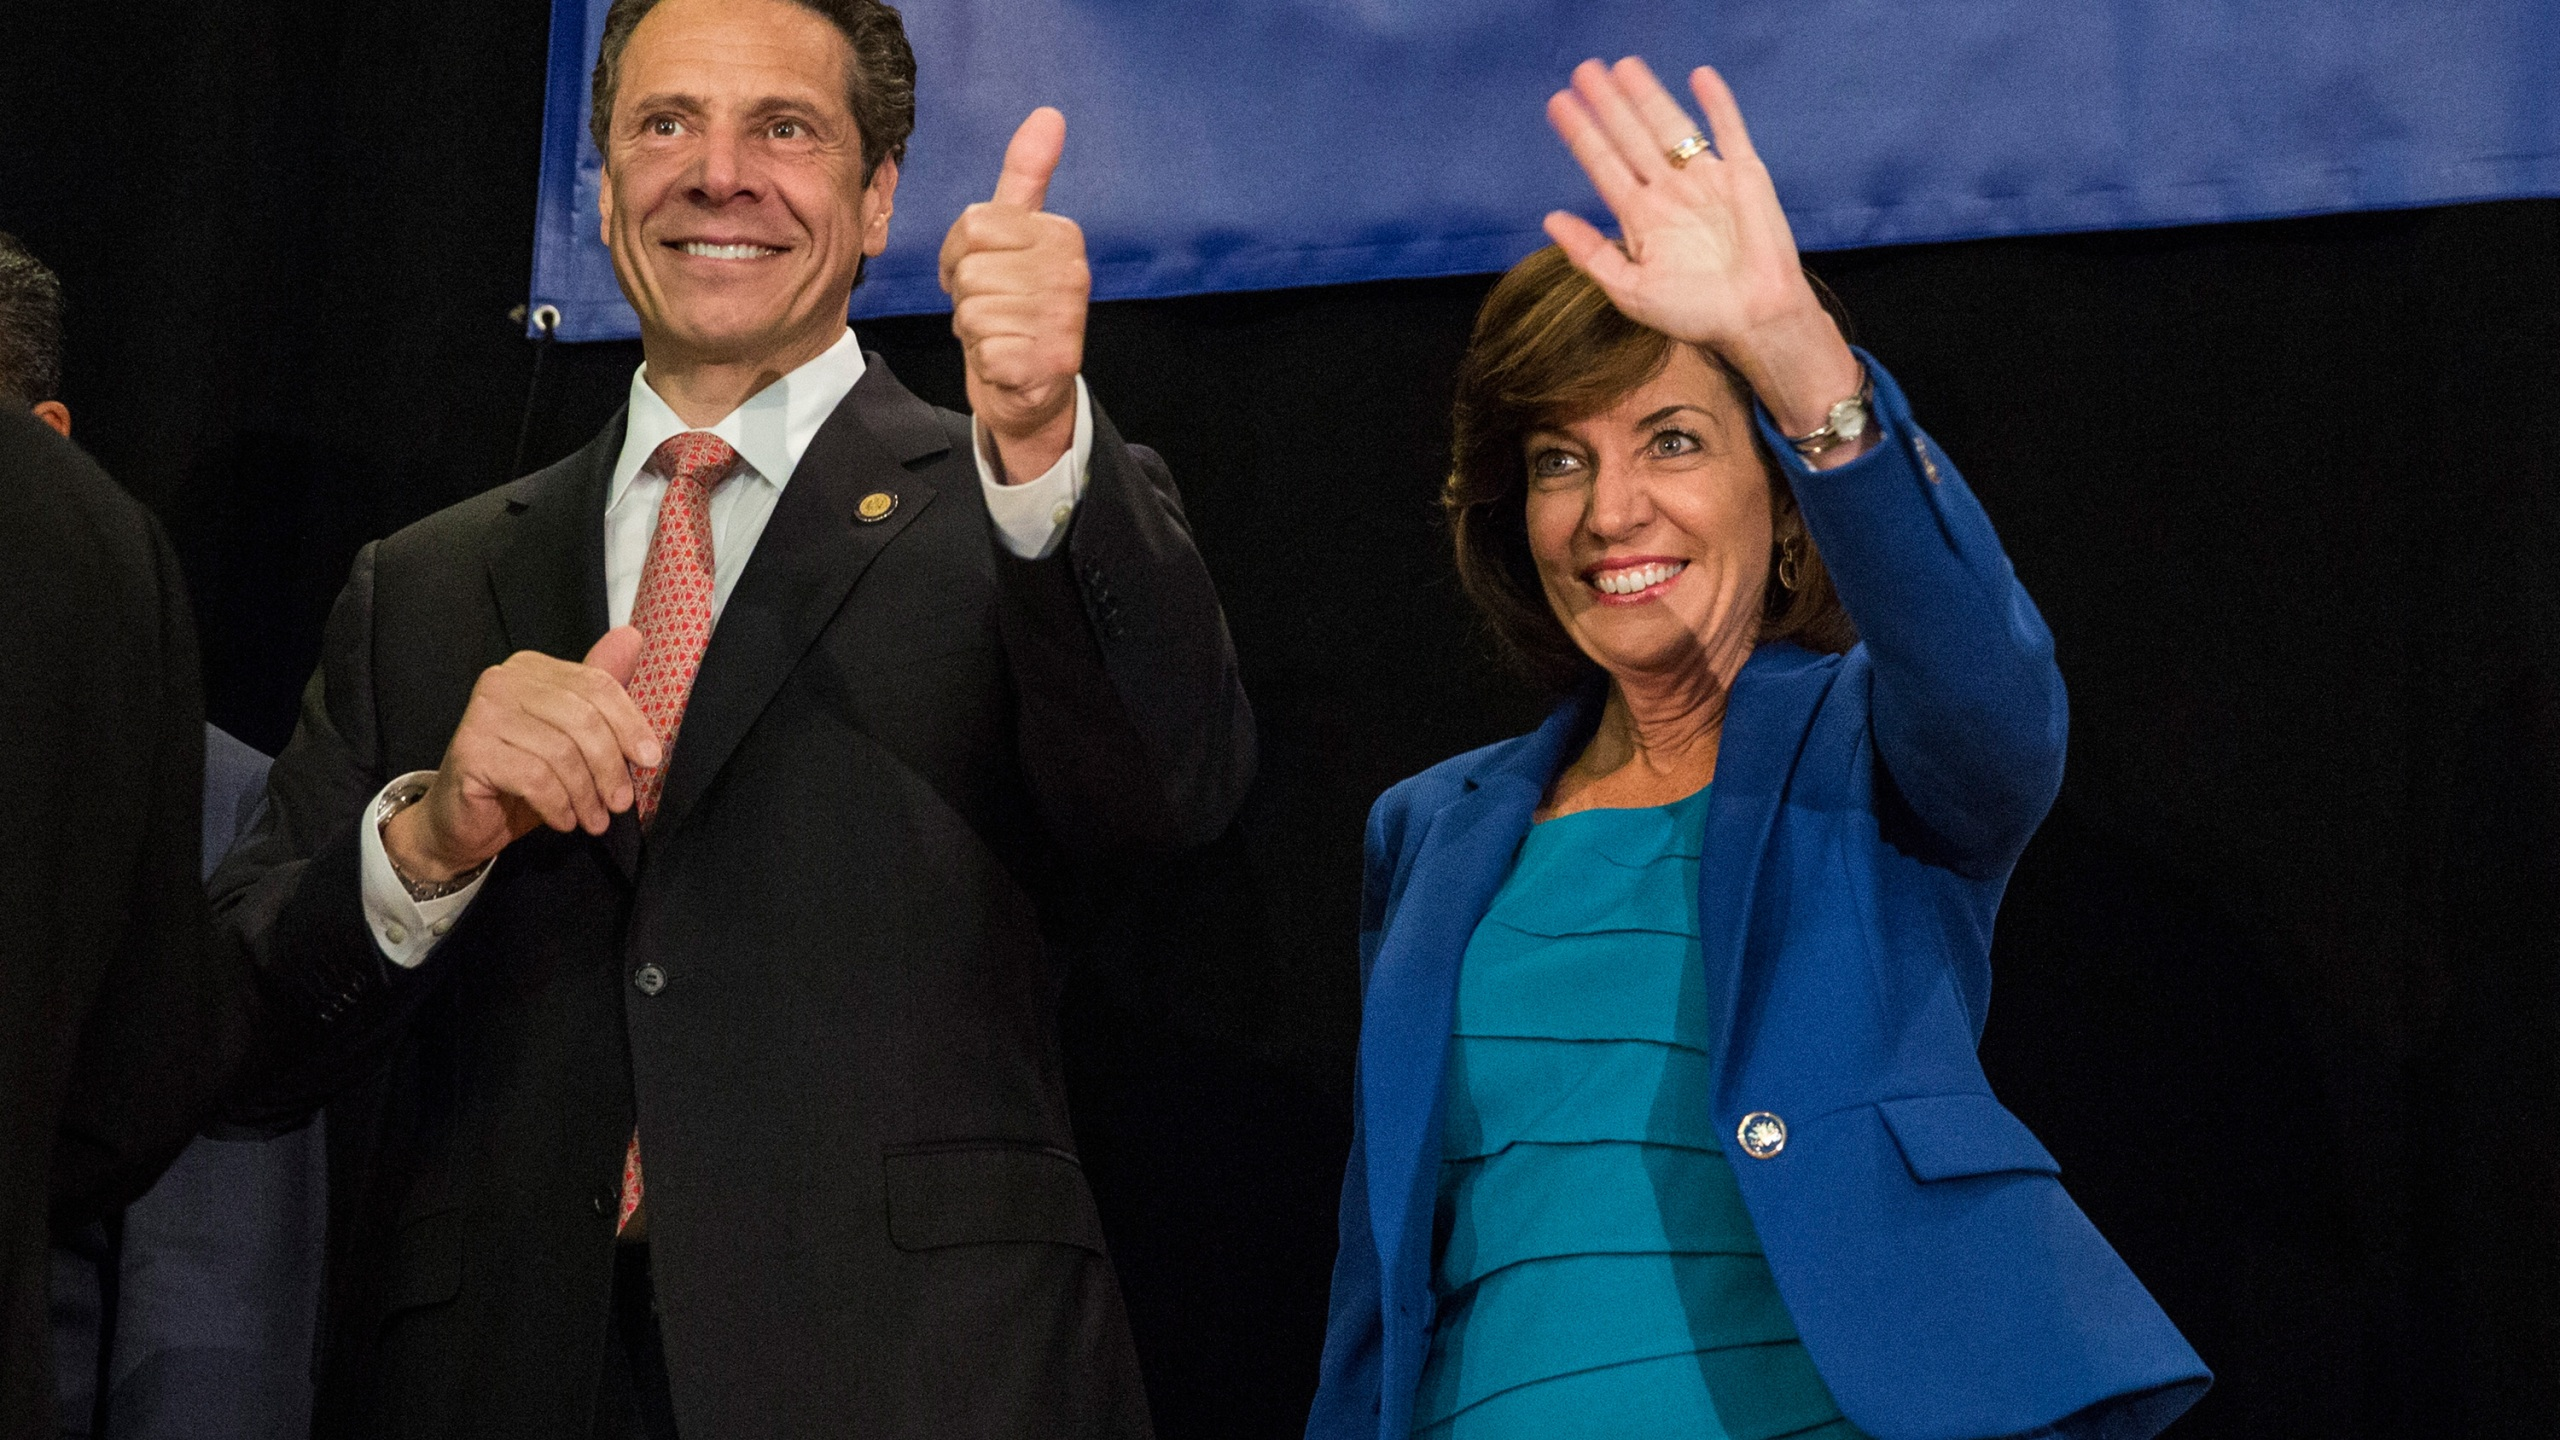 New York Governor Andrew Cuomo (L) and his choice for Lieutenant Governor Kathy Hochul, campaign together at the Hotel Trade Council during a reelection campaign event on September 8, 2014 in New York City. (Andrew Burton/Getty Images)